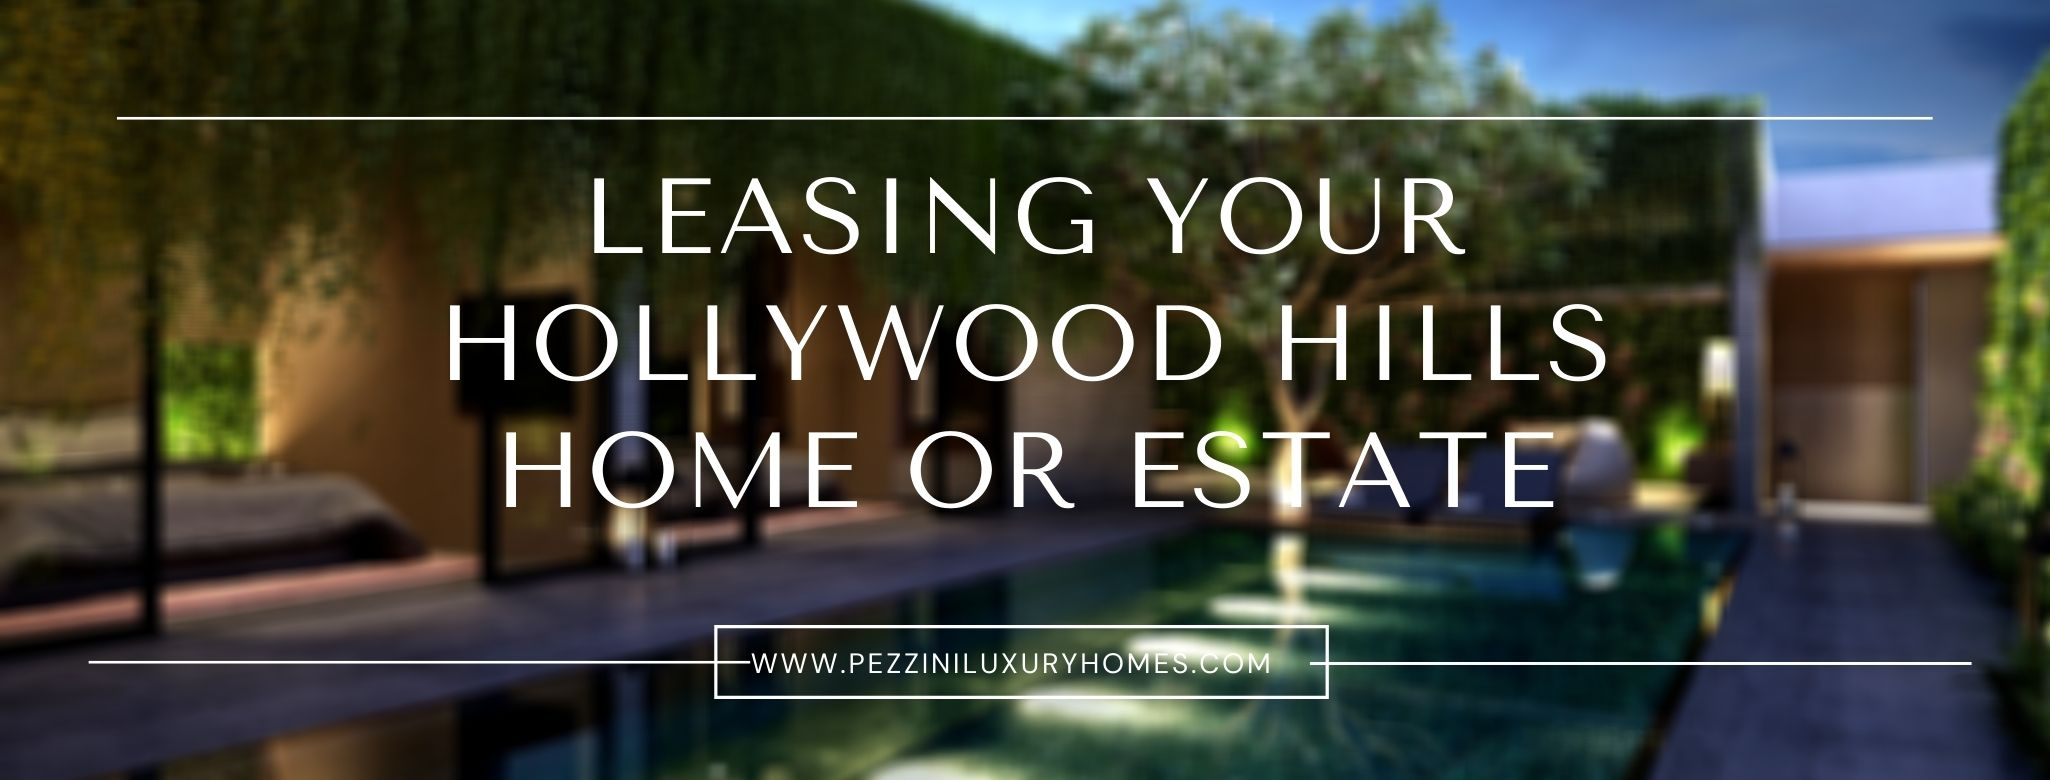 Leasing Your Hollywood Hills Home